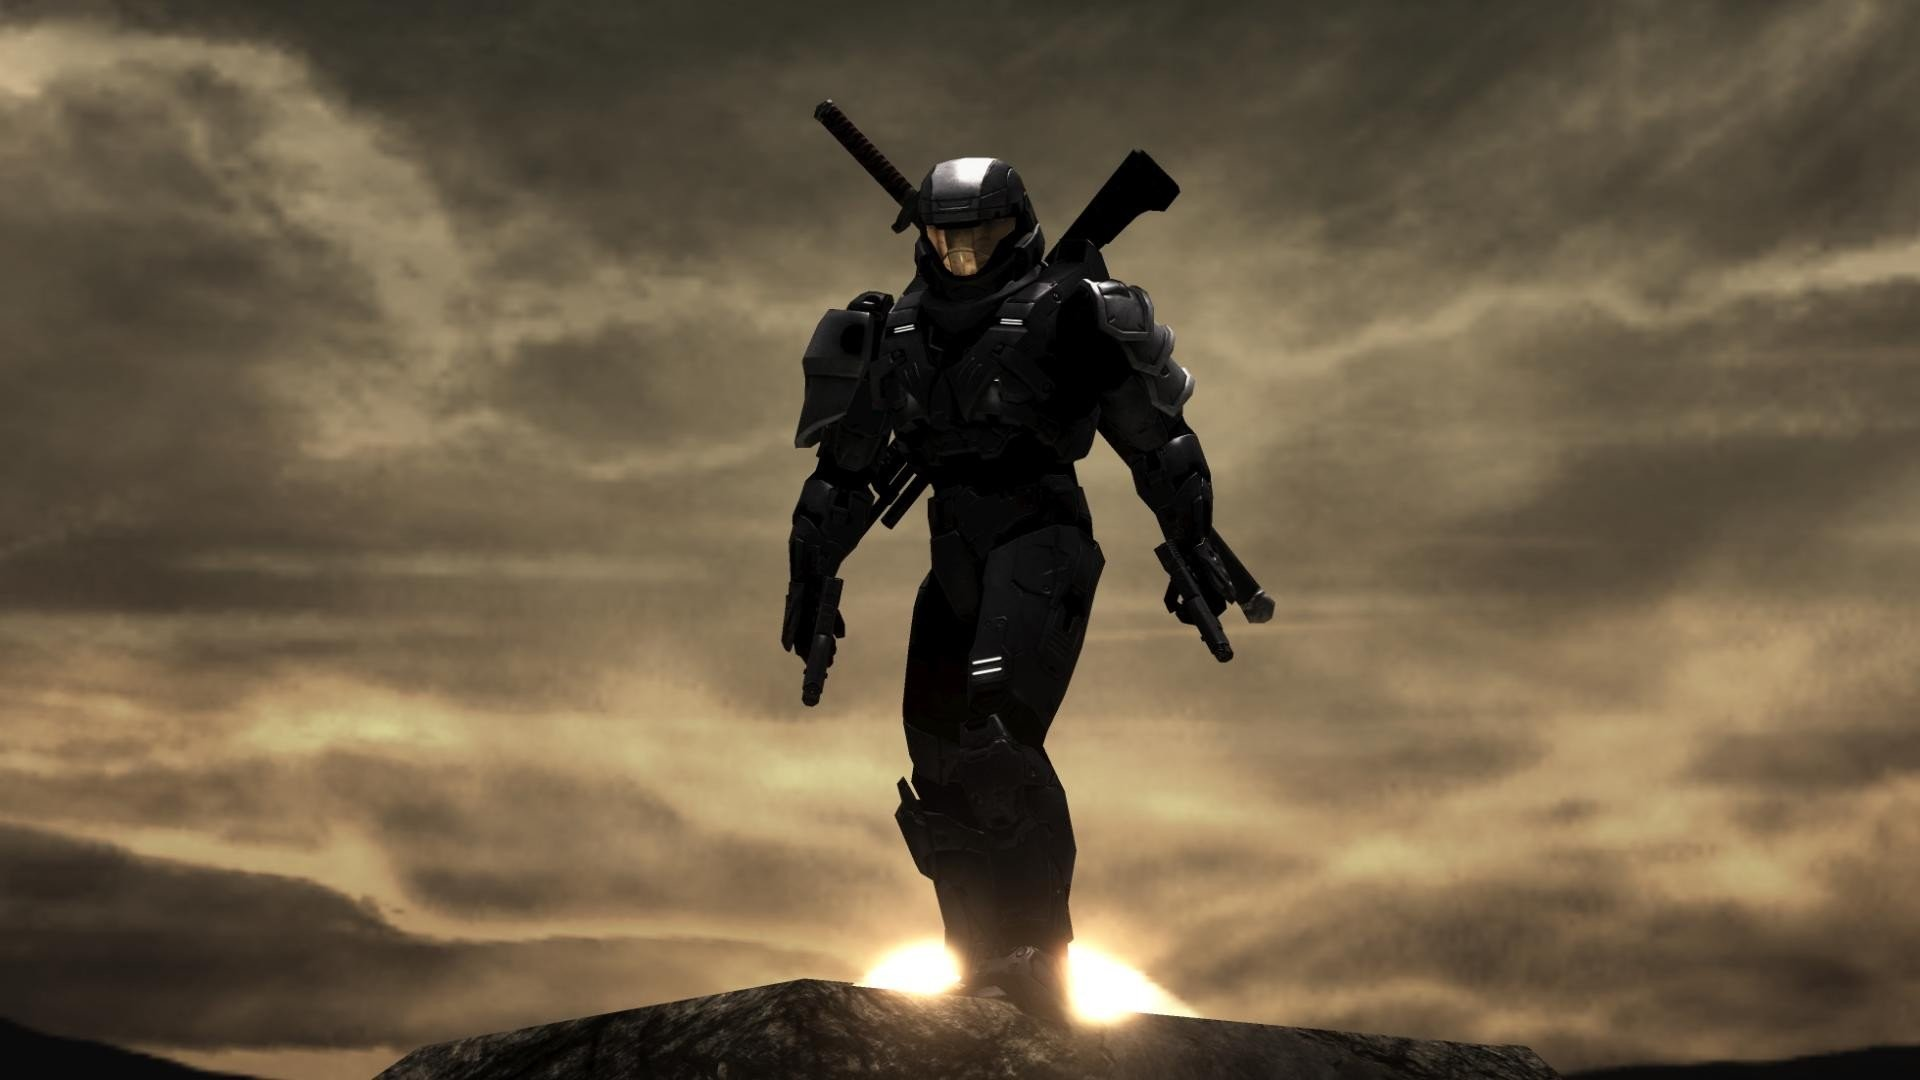 1920x1080 Master Chief Pics (Mobile, iPad)